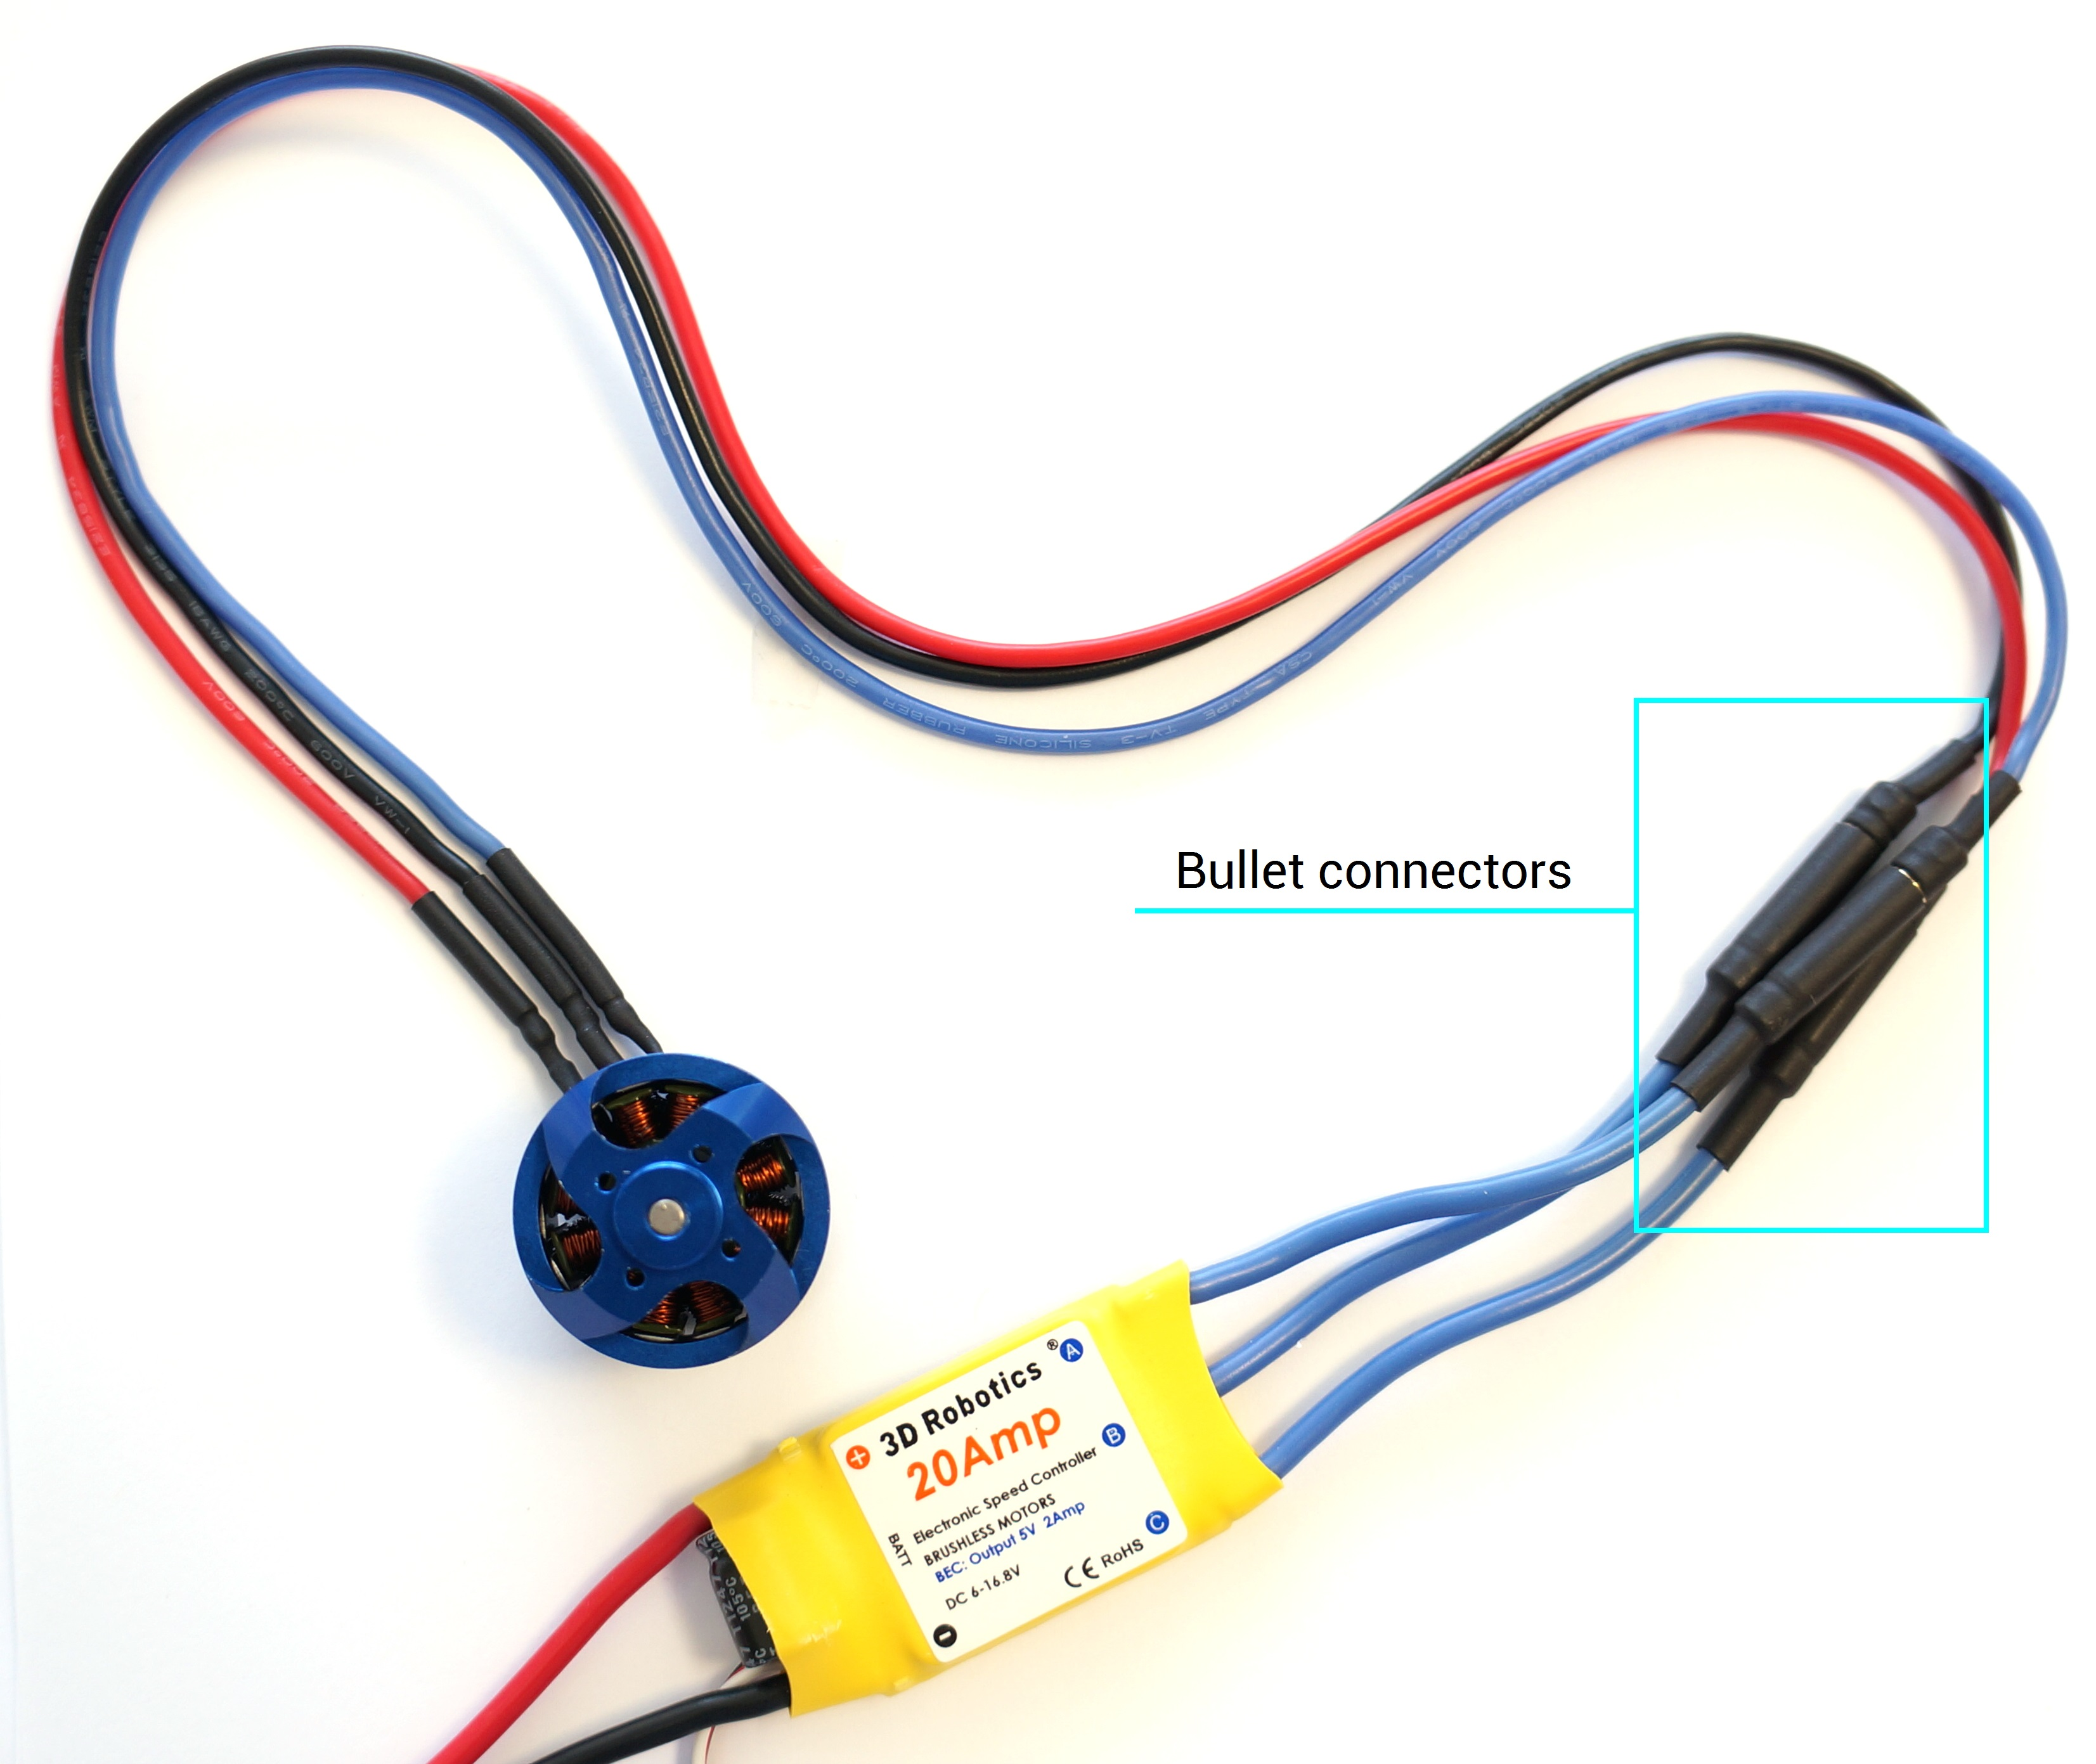 esc to motor wiring esc image wiring diagram beginners guide to connecting your rc plane electronic parts 11 steps on esc to motor wiring